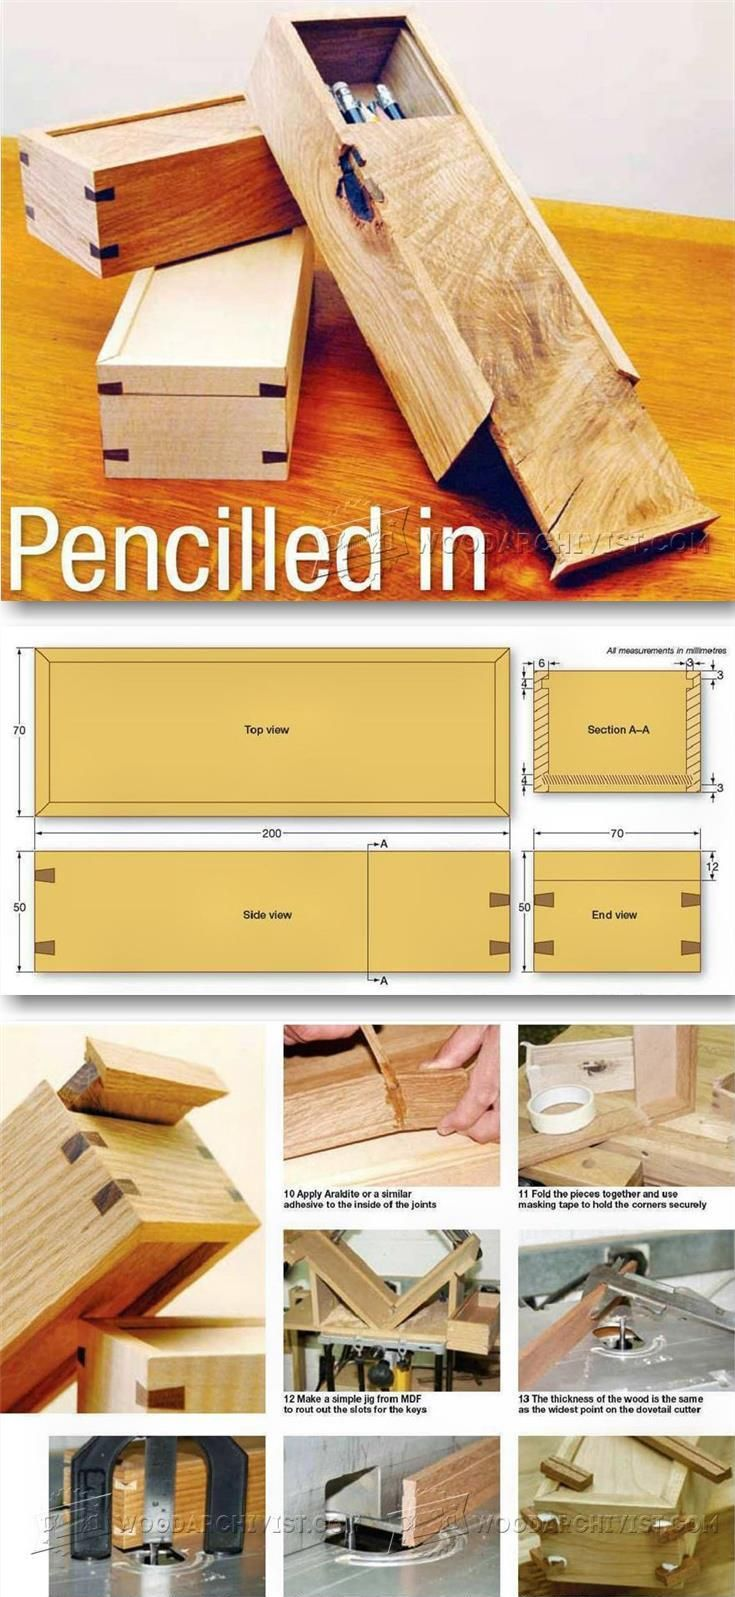 pin on carpentry, building & making stuff